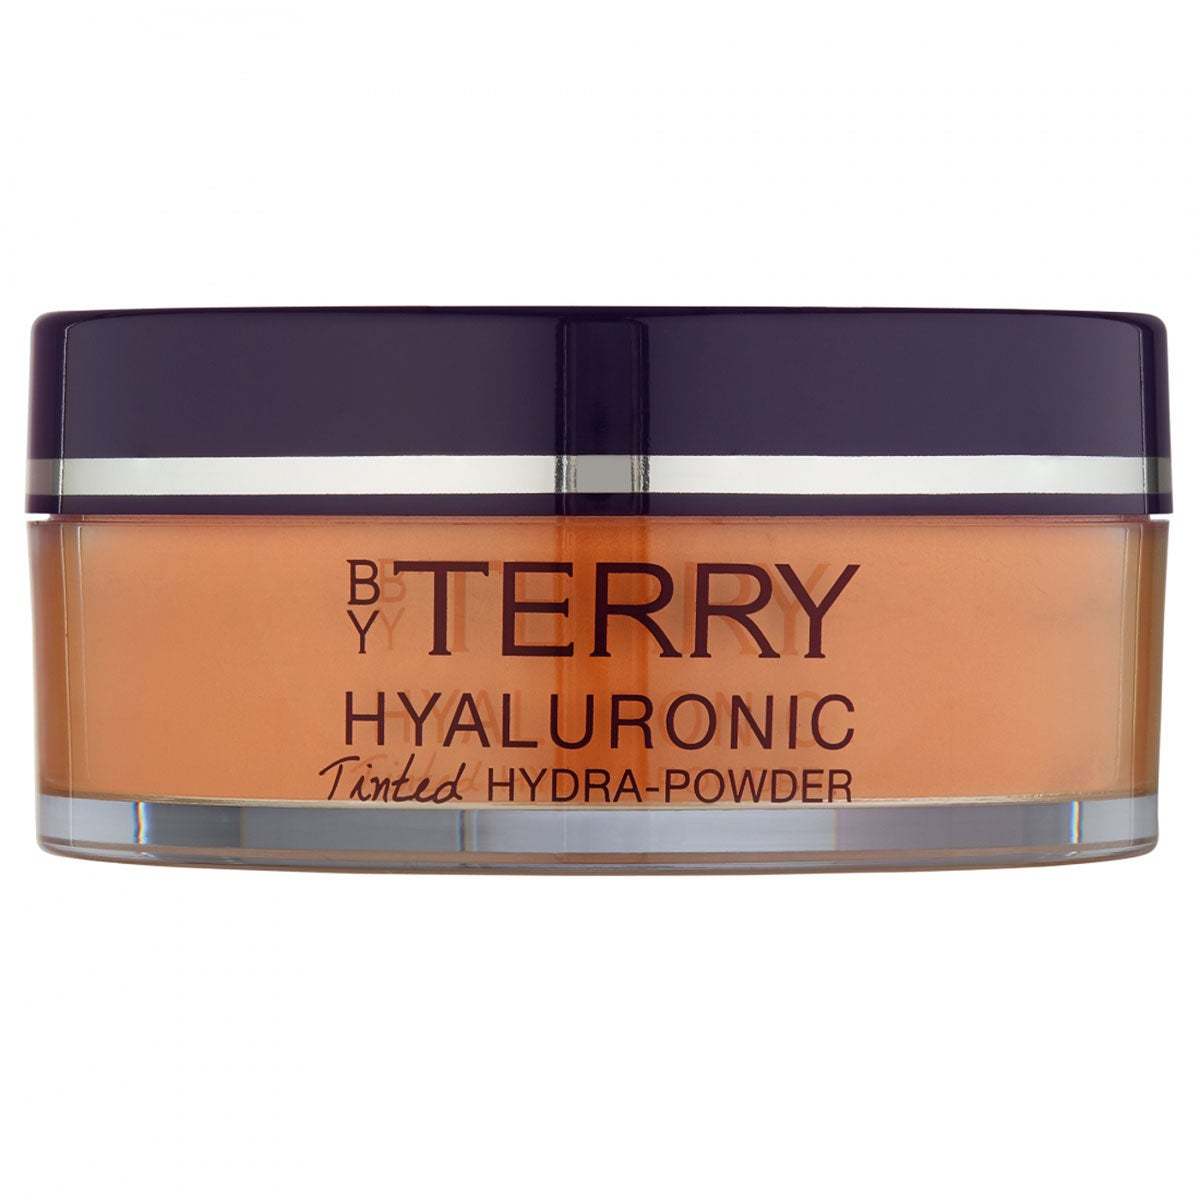 Hyaluronic Hydra-Powder Tinted Veil By Terry Puder